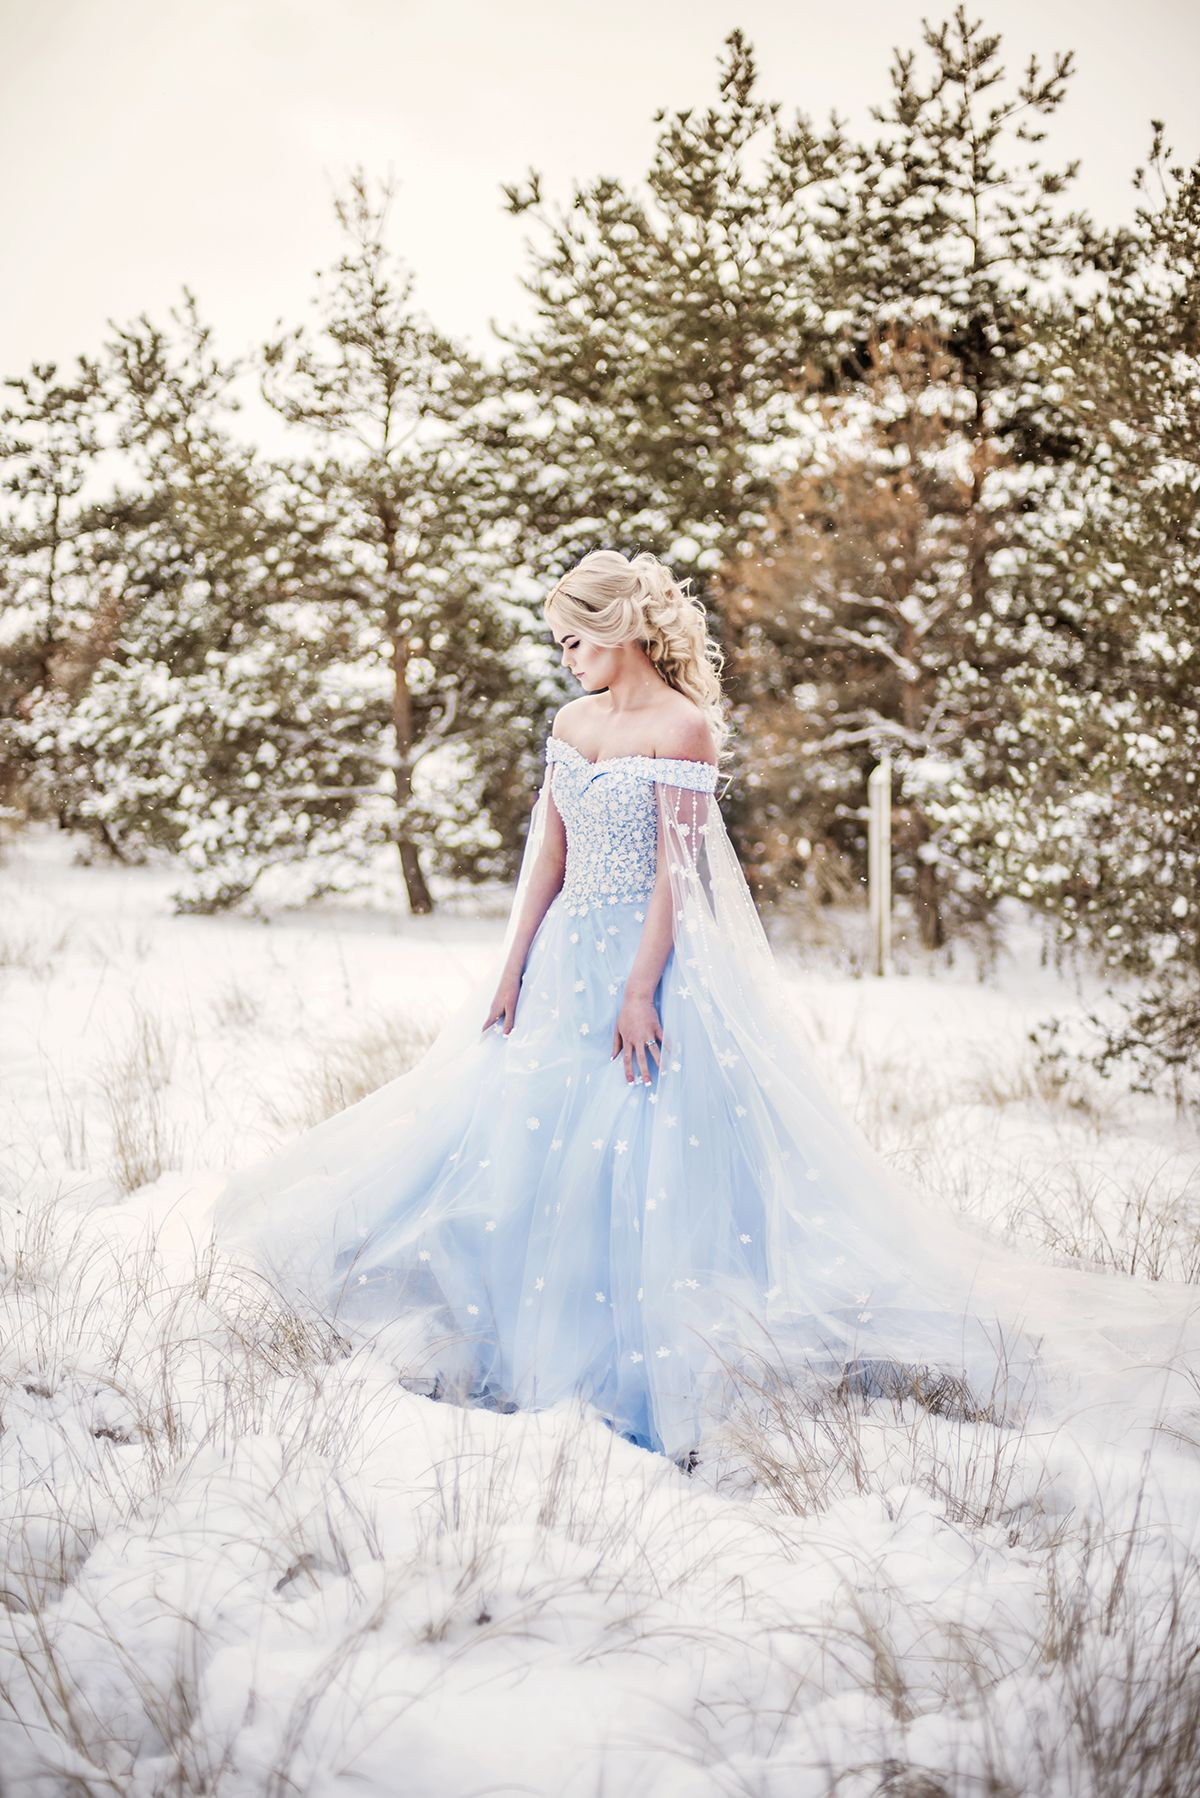 Winter Cinderella wedding ideas | Frozen wedding dress, Frozen